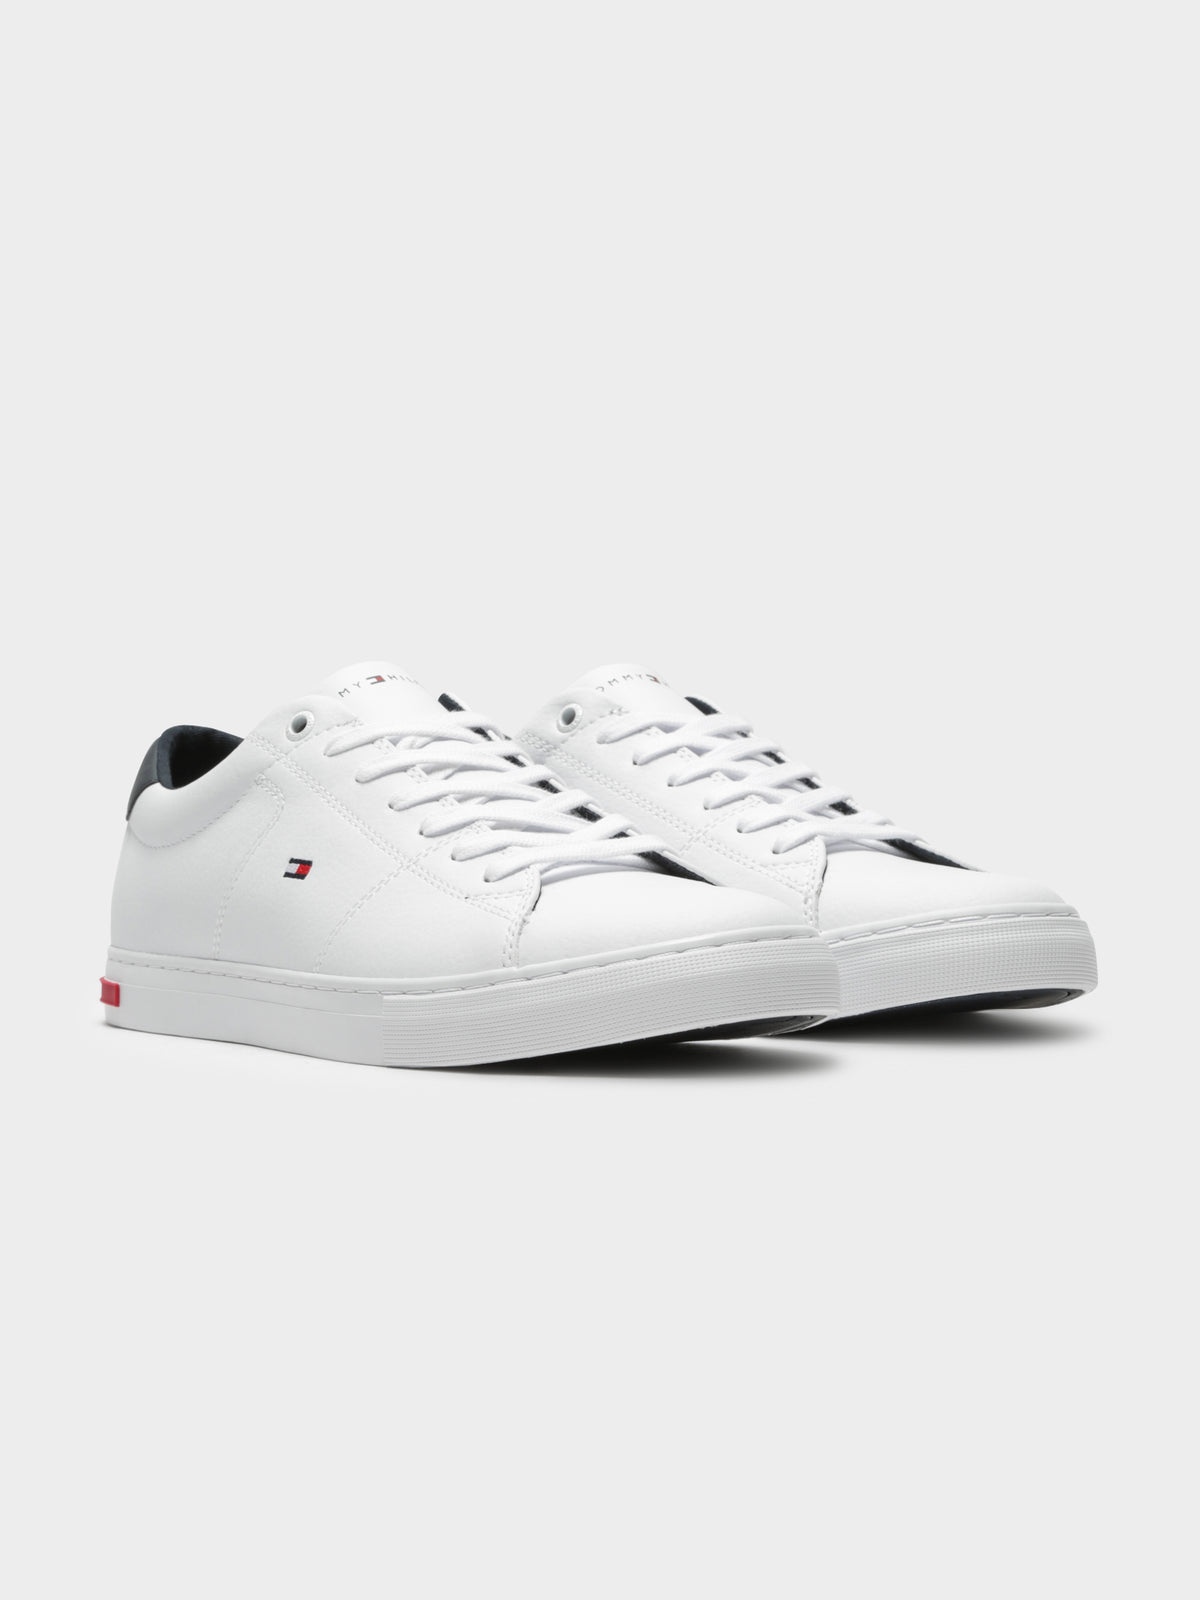 Essential Leather Detail Vulc Sneakers in White